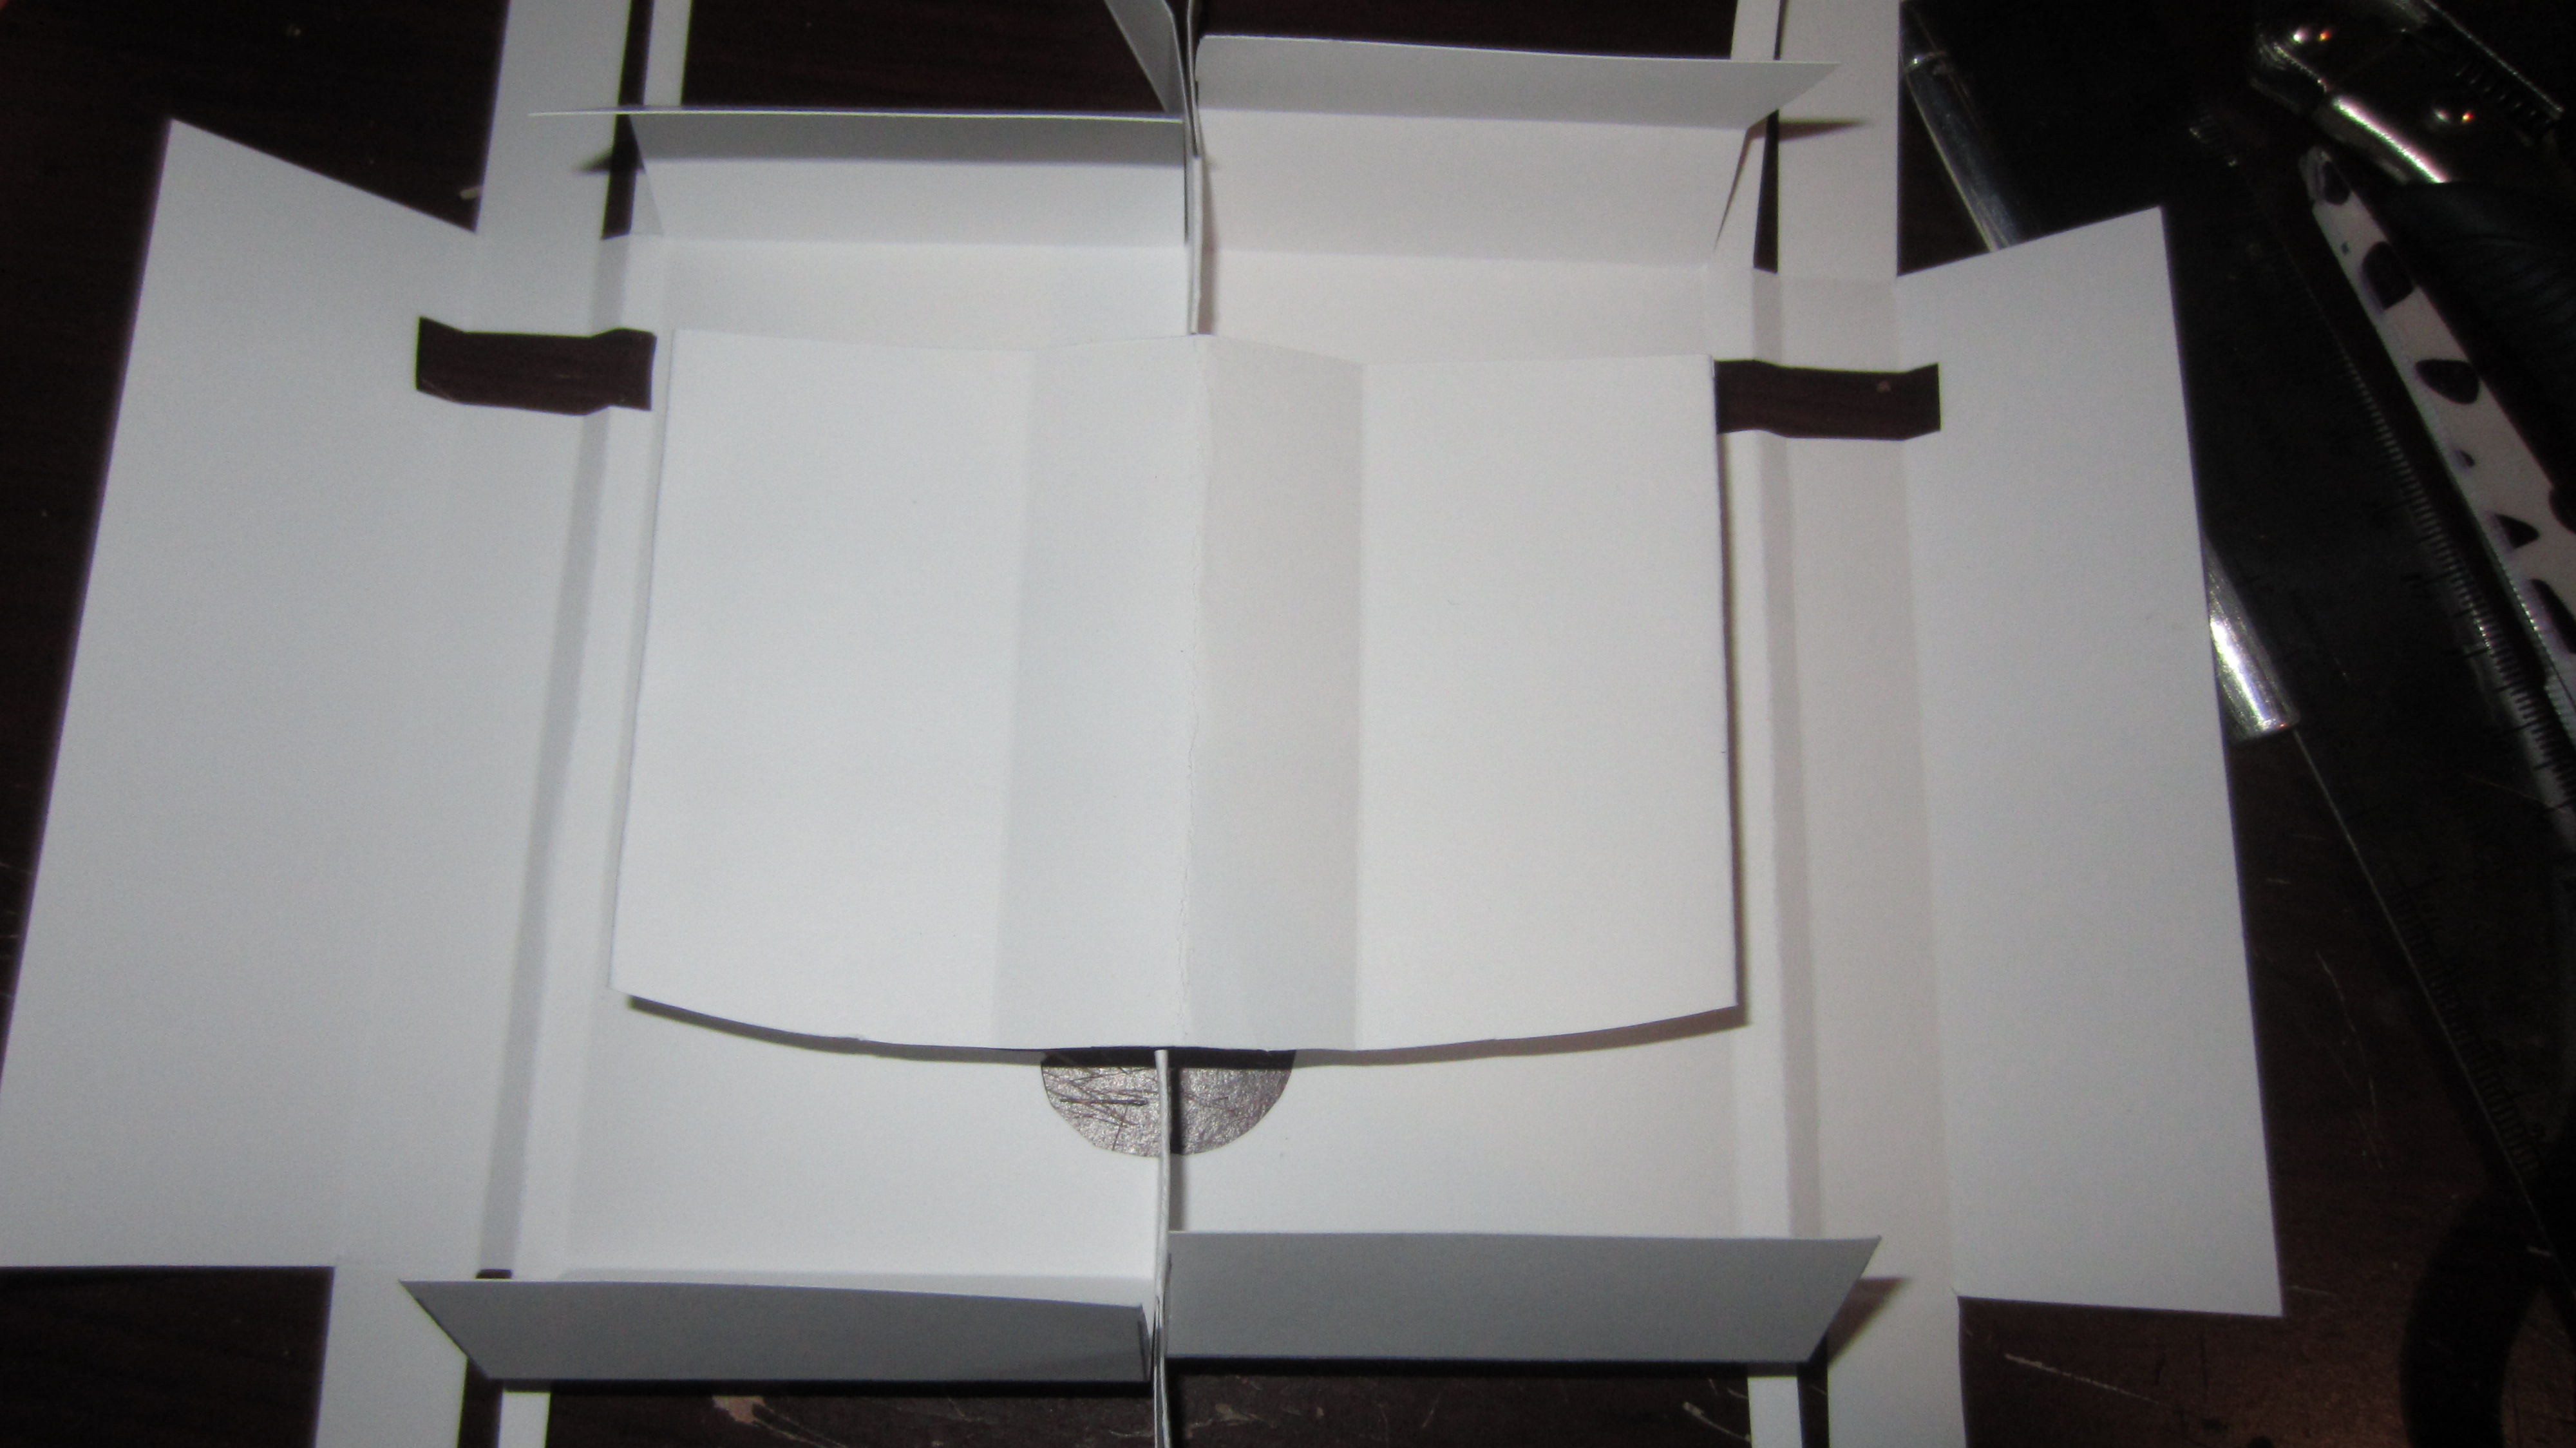 Picture of The Insert: Attaching the Large Flaps